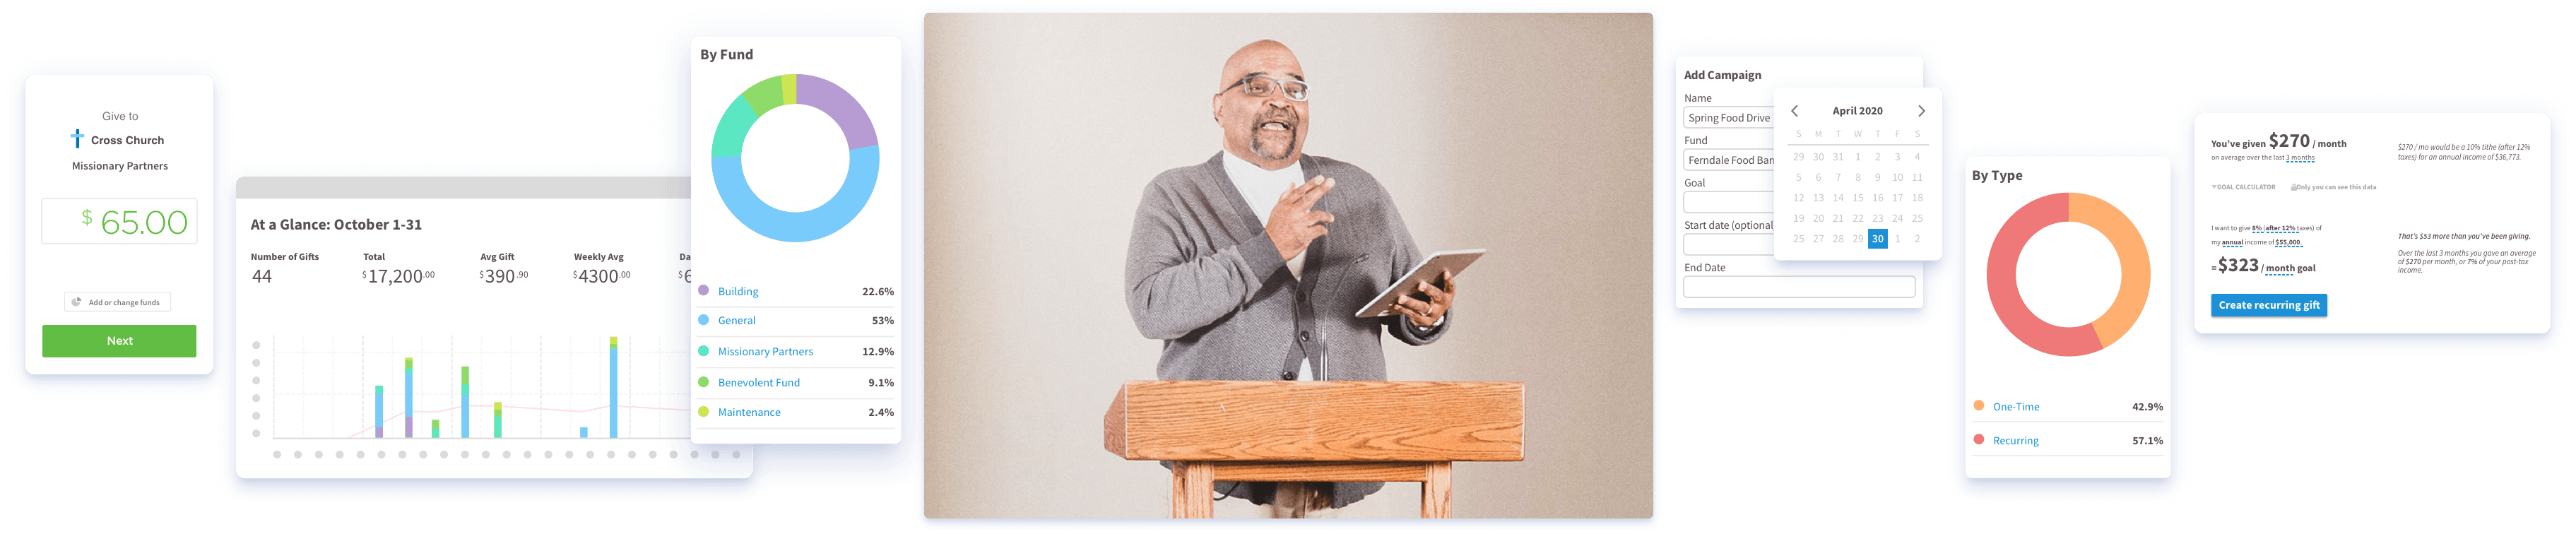 Pastor preaching from the pulpit